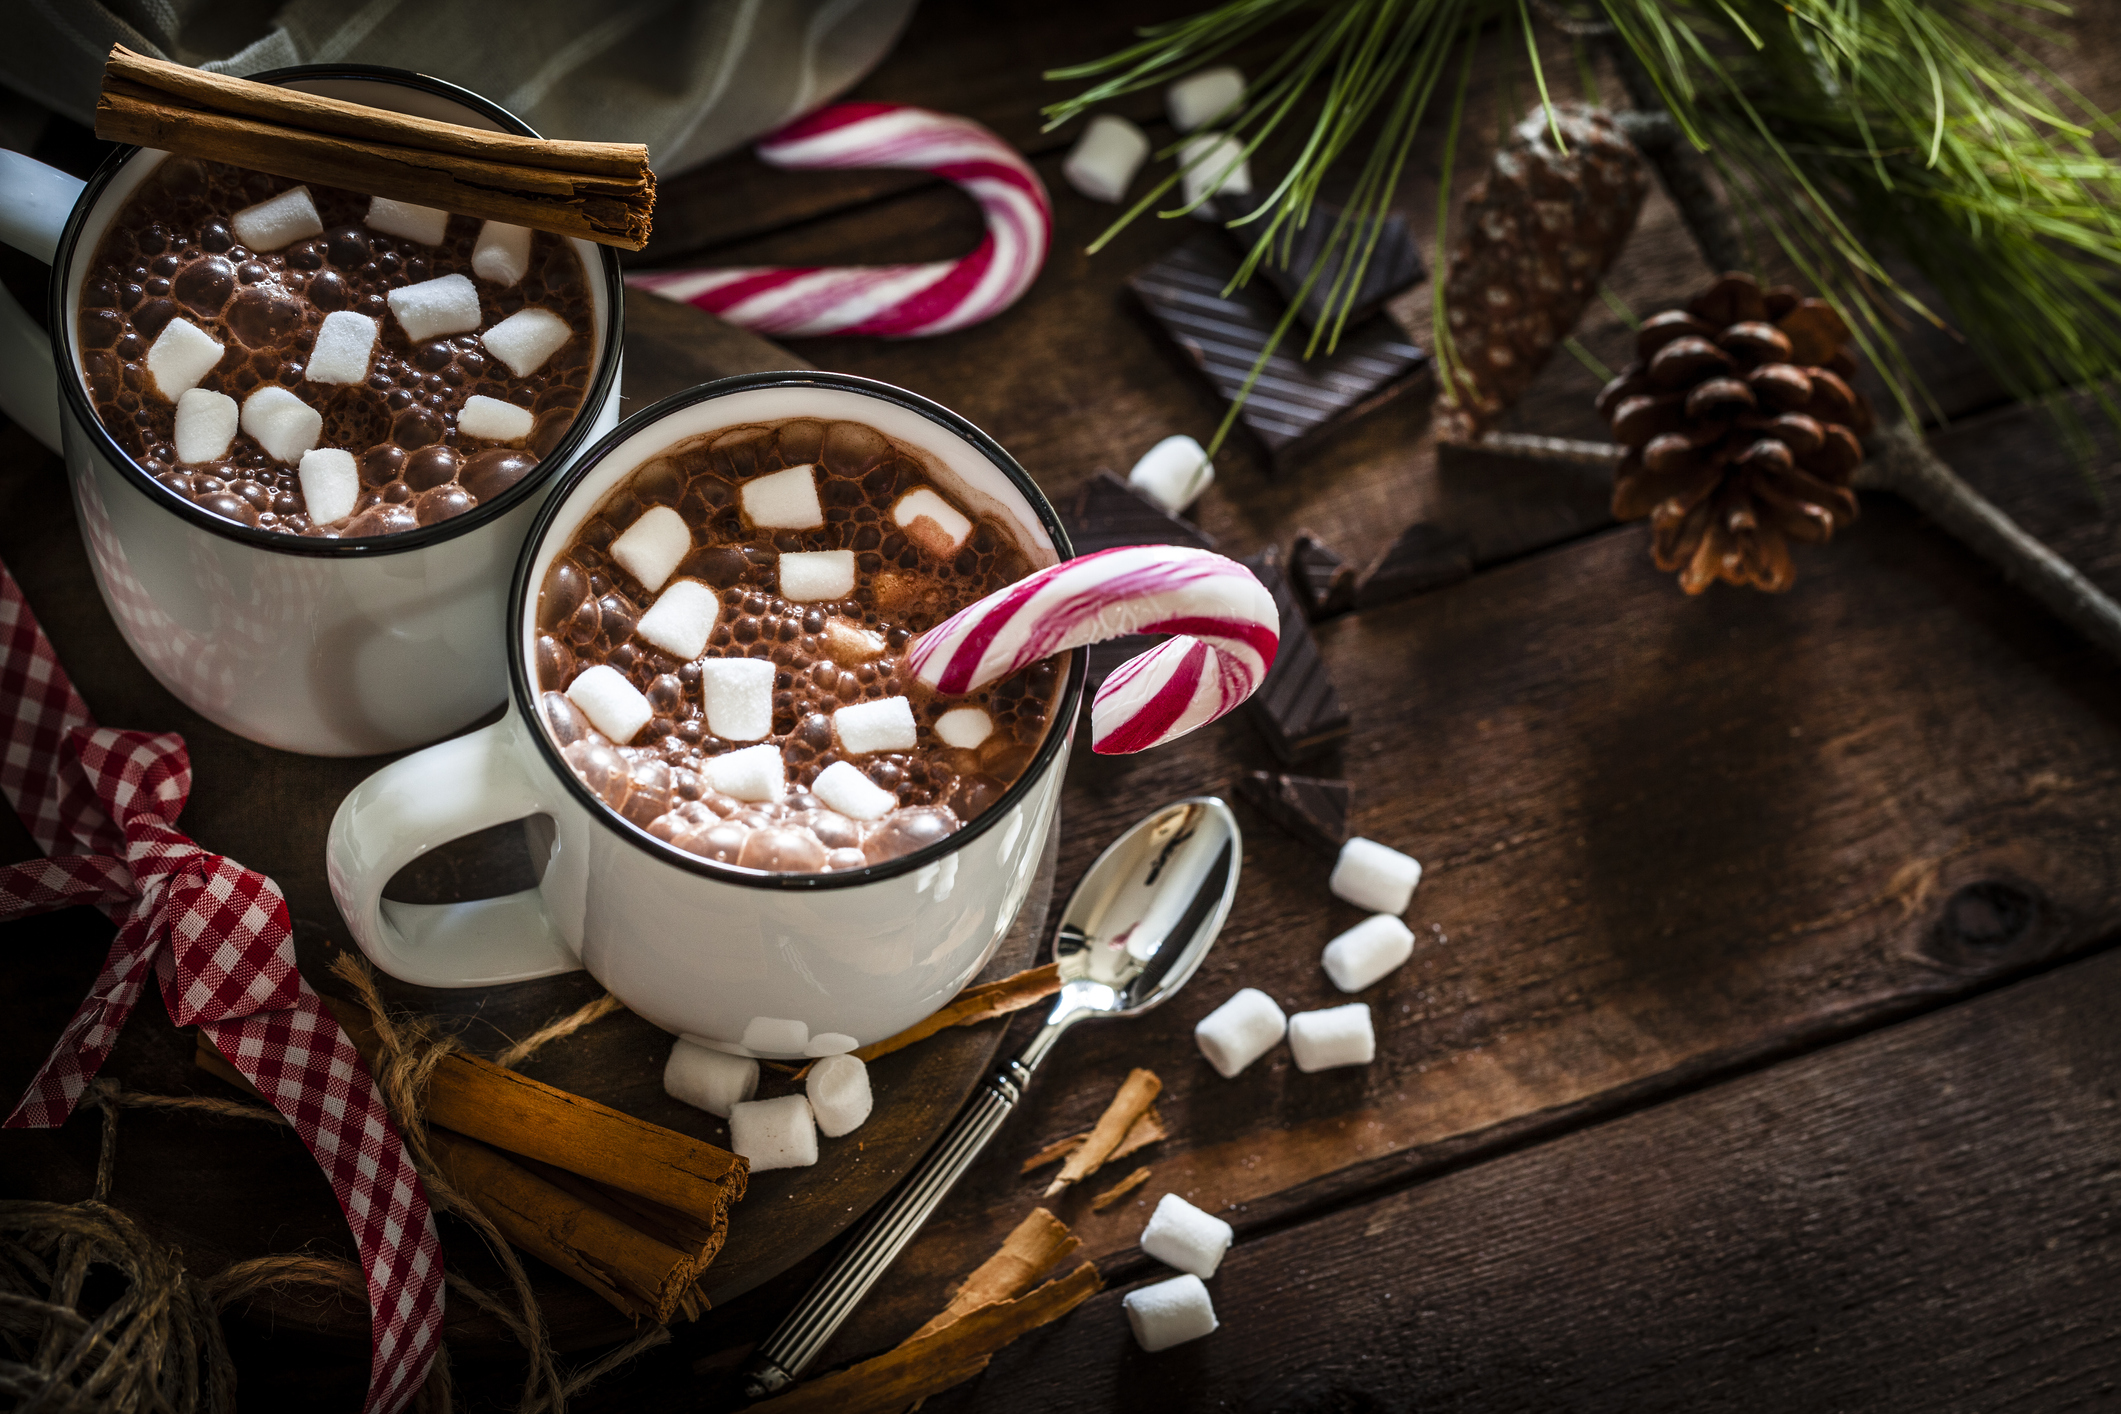 How to Leverage the Holiday Season in Your Practice Review of